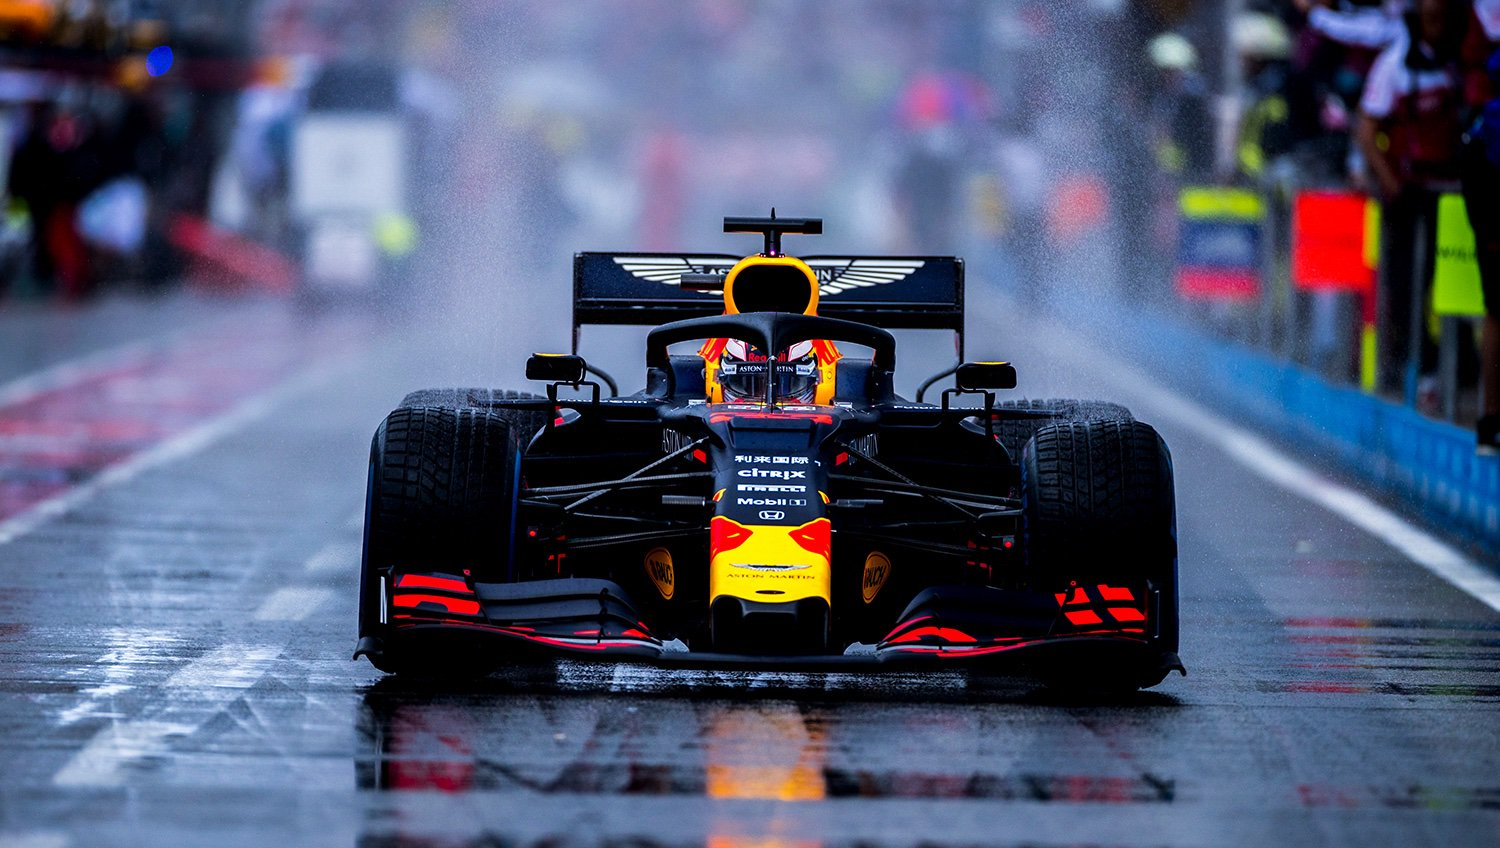 Aston Martin Red Bull Racing On Twitter Riding The Hockenheimring Storm Max S Germangp Display Sees Him Pick Up Driver Of The Day F1